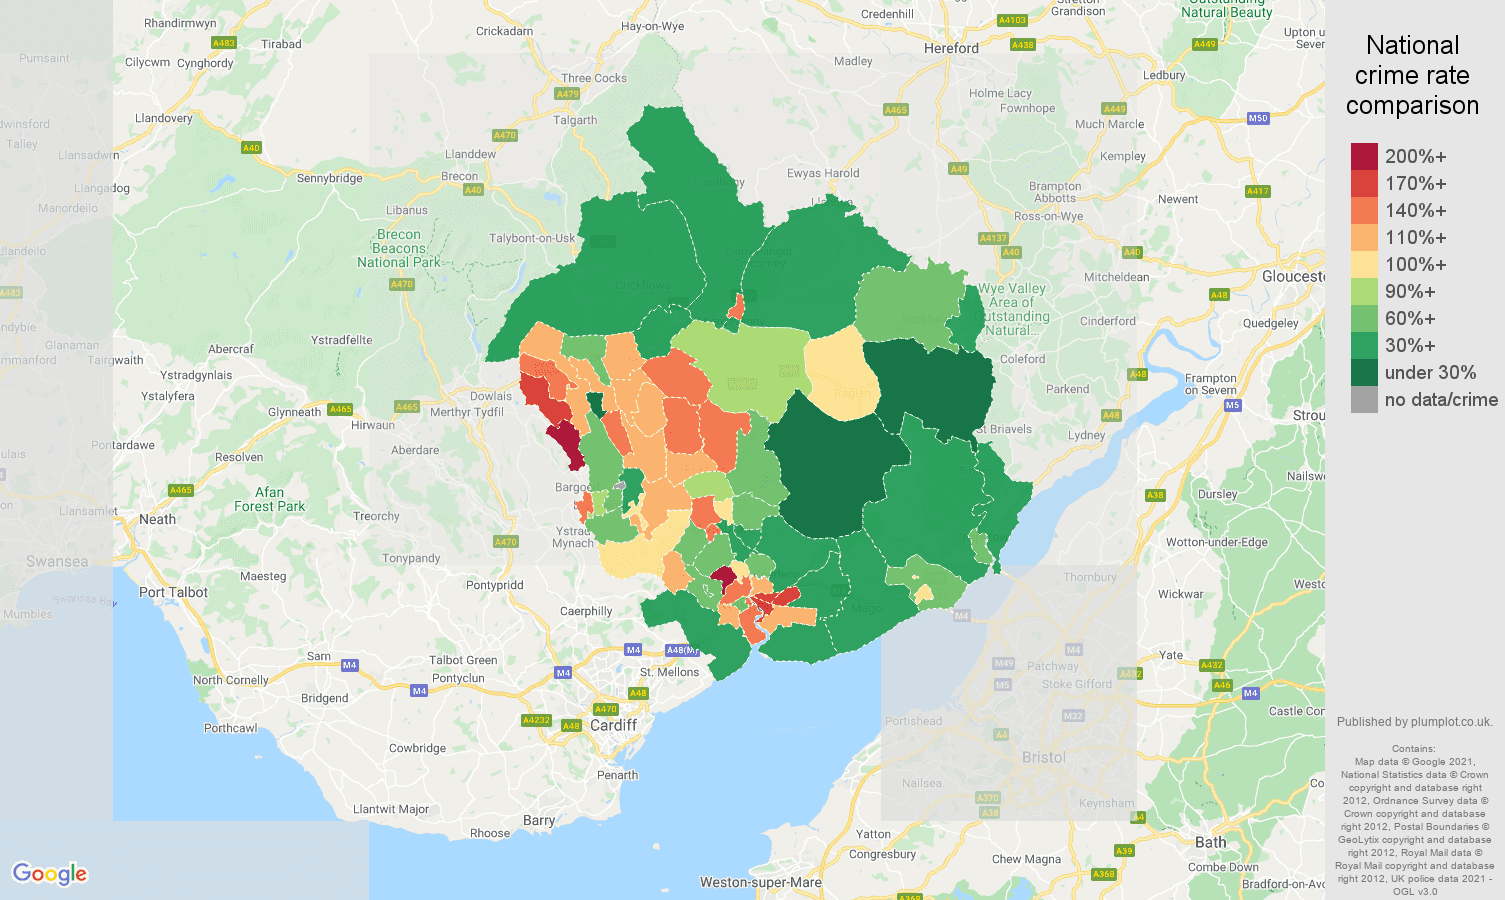 Newport violent crime rate comparison map